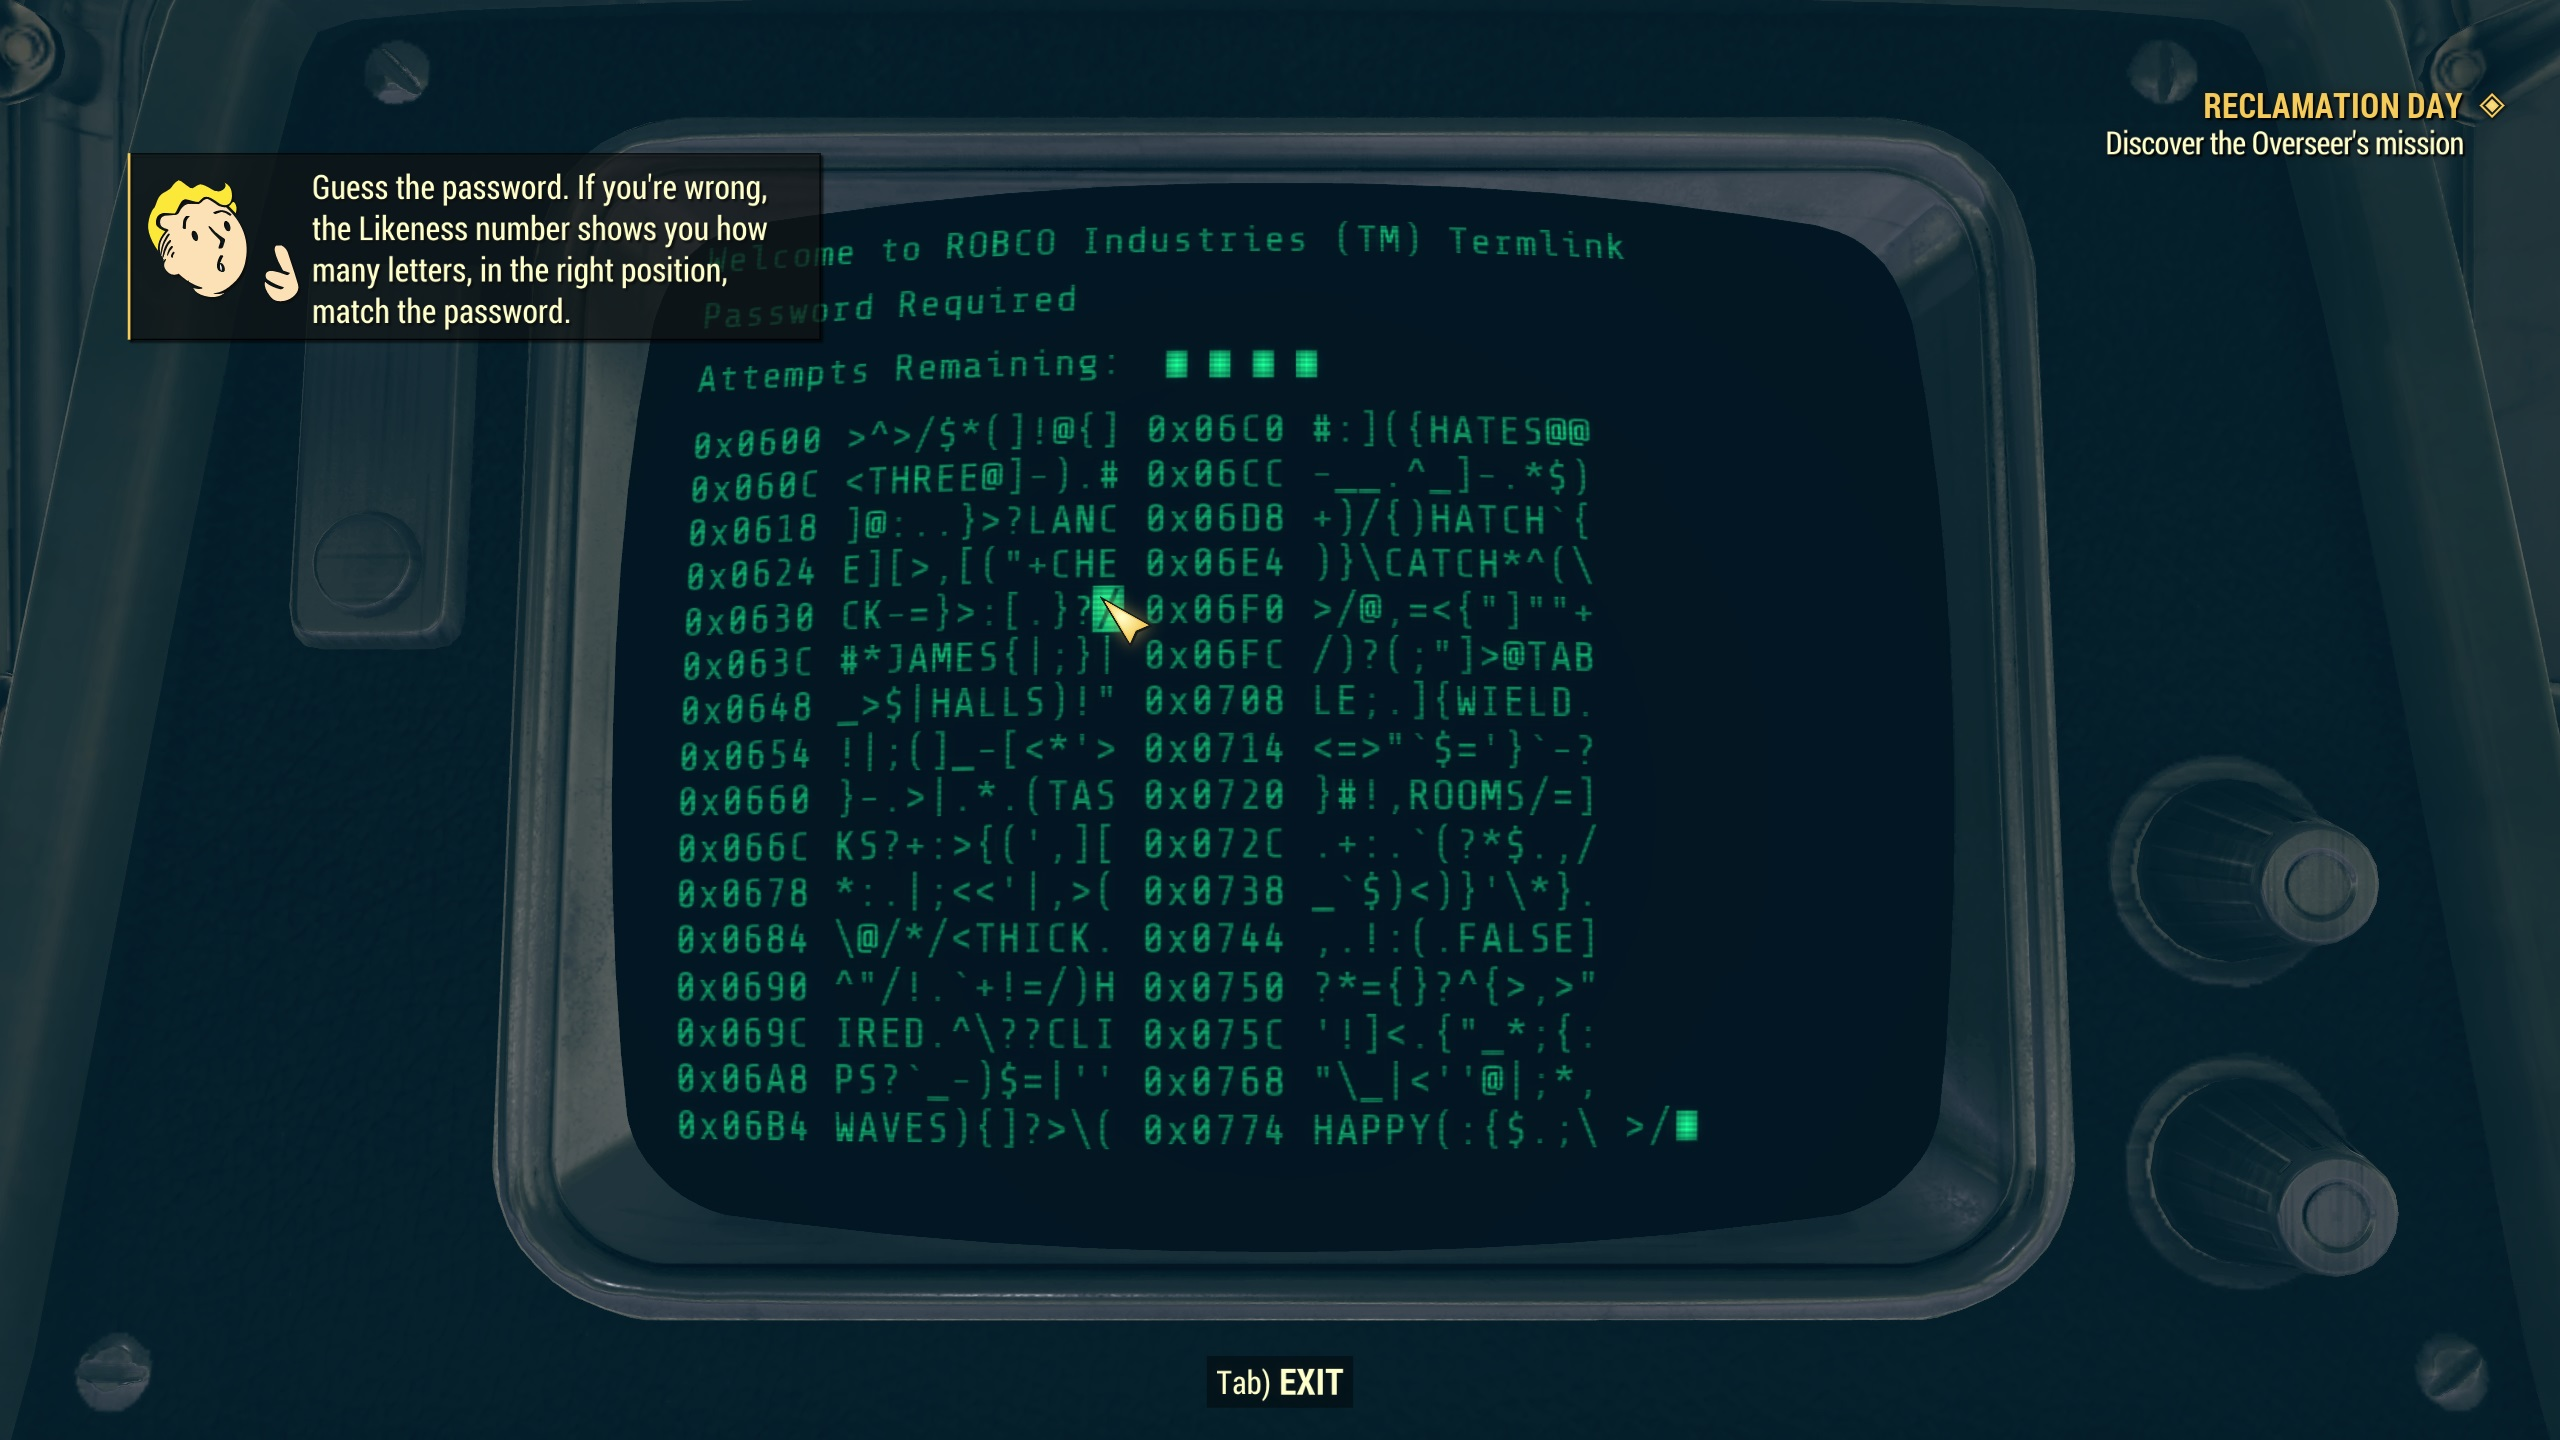 Fallout 76 terminal hacking: upgrading your hacking skill | Rock